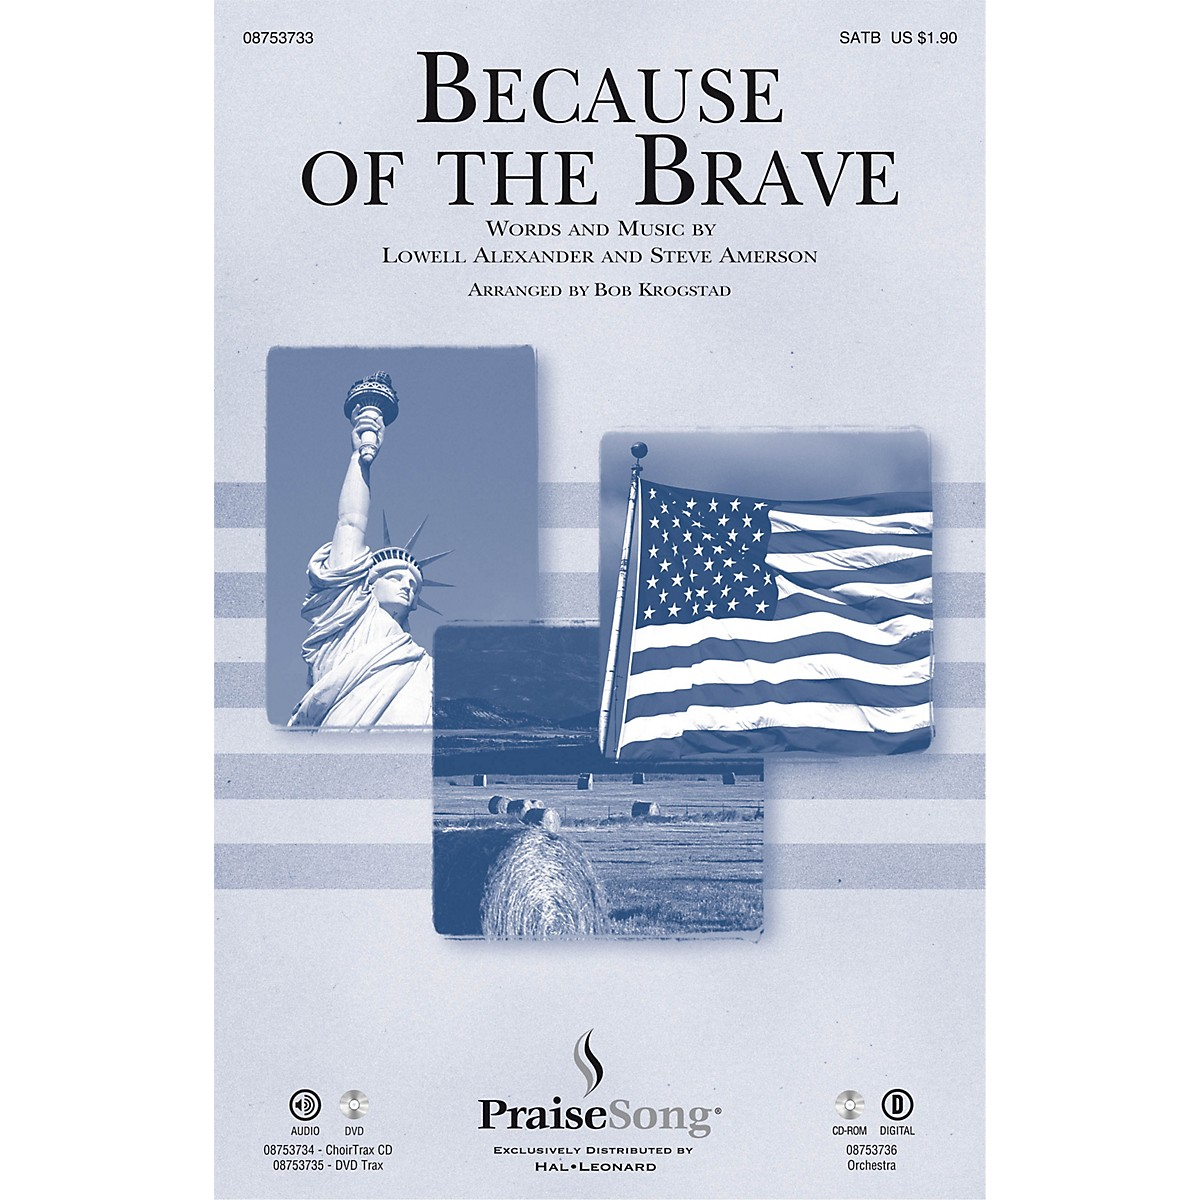 PraiseSong Because of the Brave CHOIRTRAX CD Arranged by Bob Krogstad